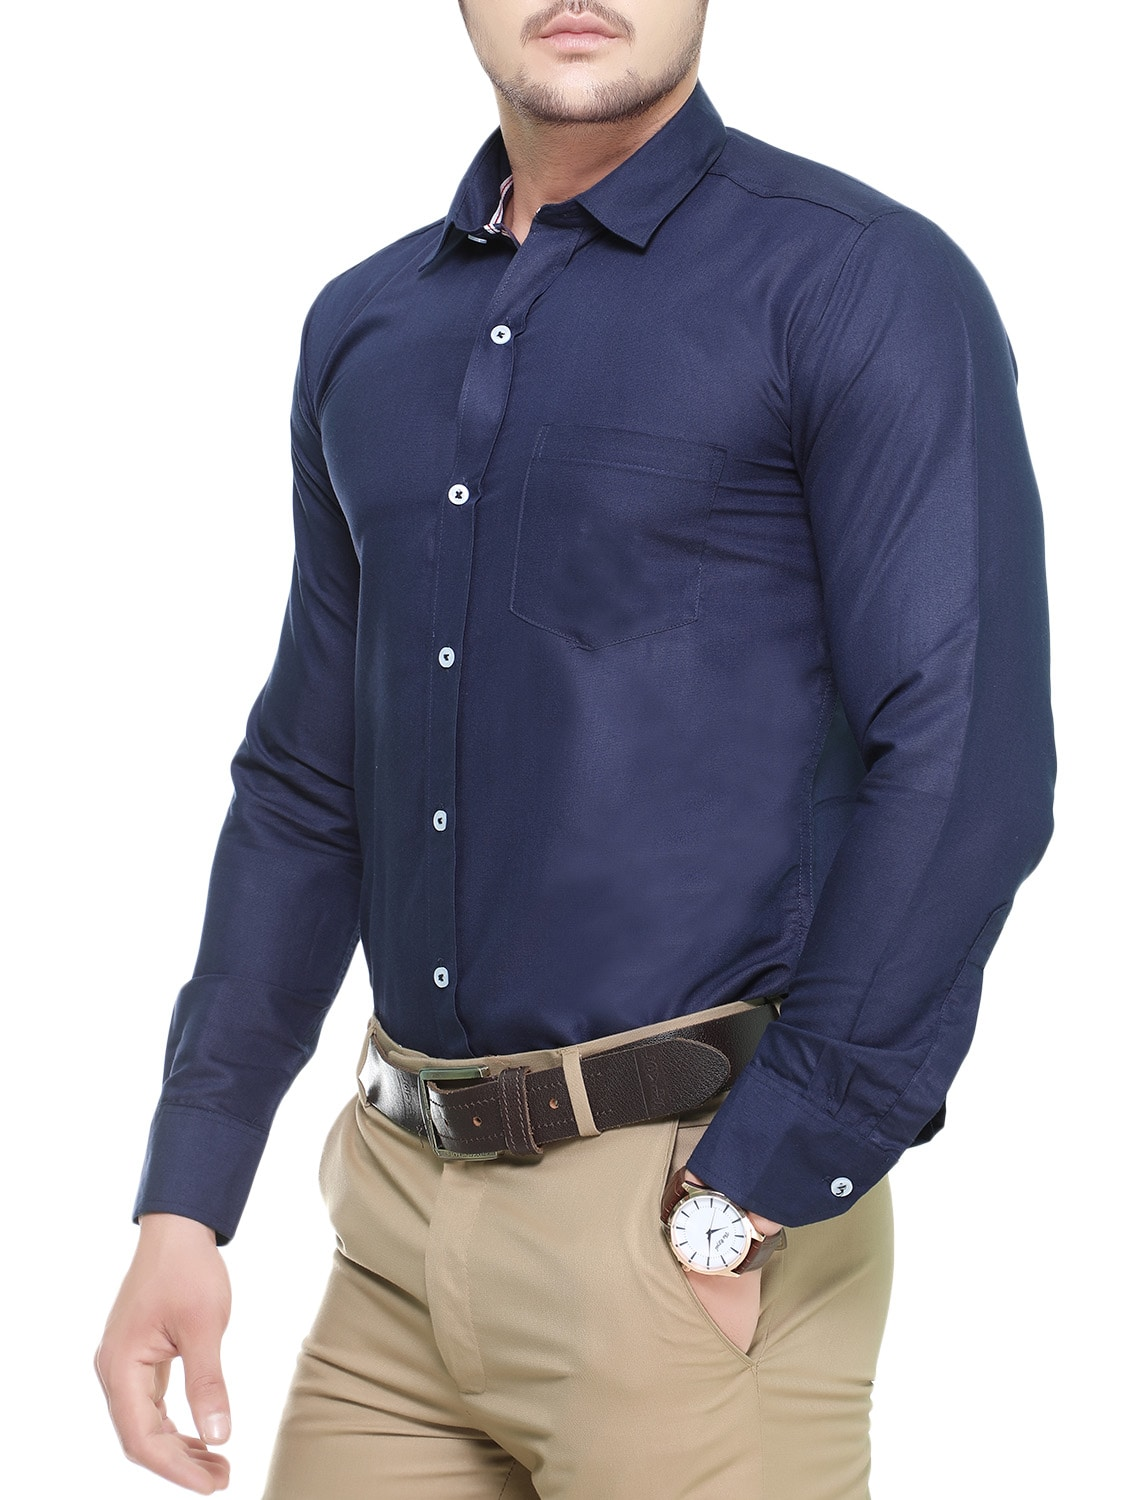 6c3d641bb12c16 Buy Navy Blue Cotton Casual Shirt for Men from Nimegh for ₹482 at 56% off